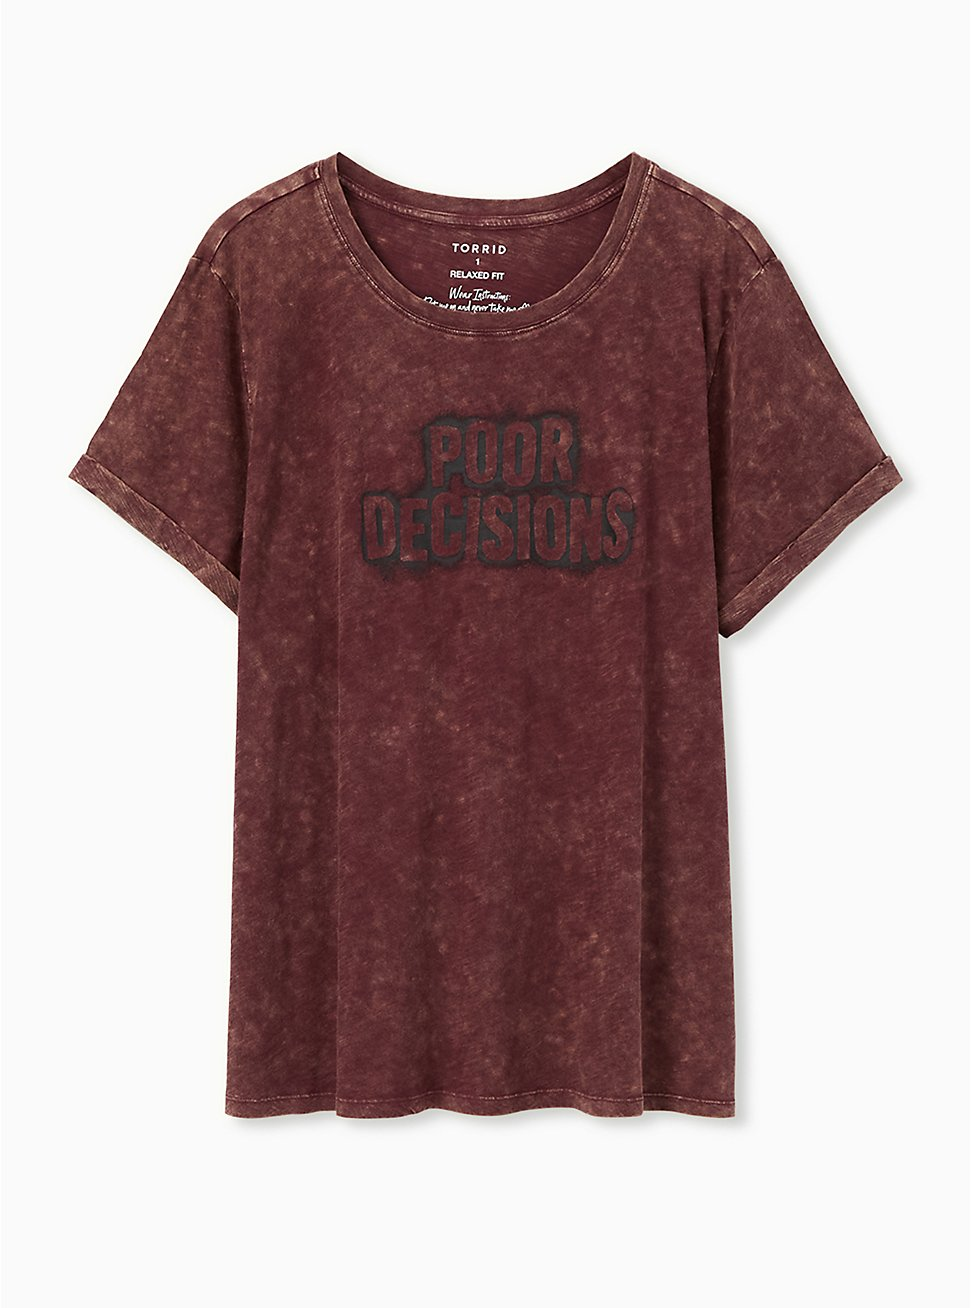 Poor Decisions Relaxed Fit Crew Tee - Slub Mineral Wash Burgundy Red, WINETASTING, hi-res